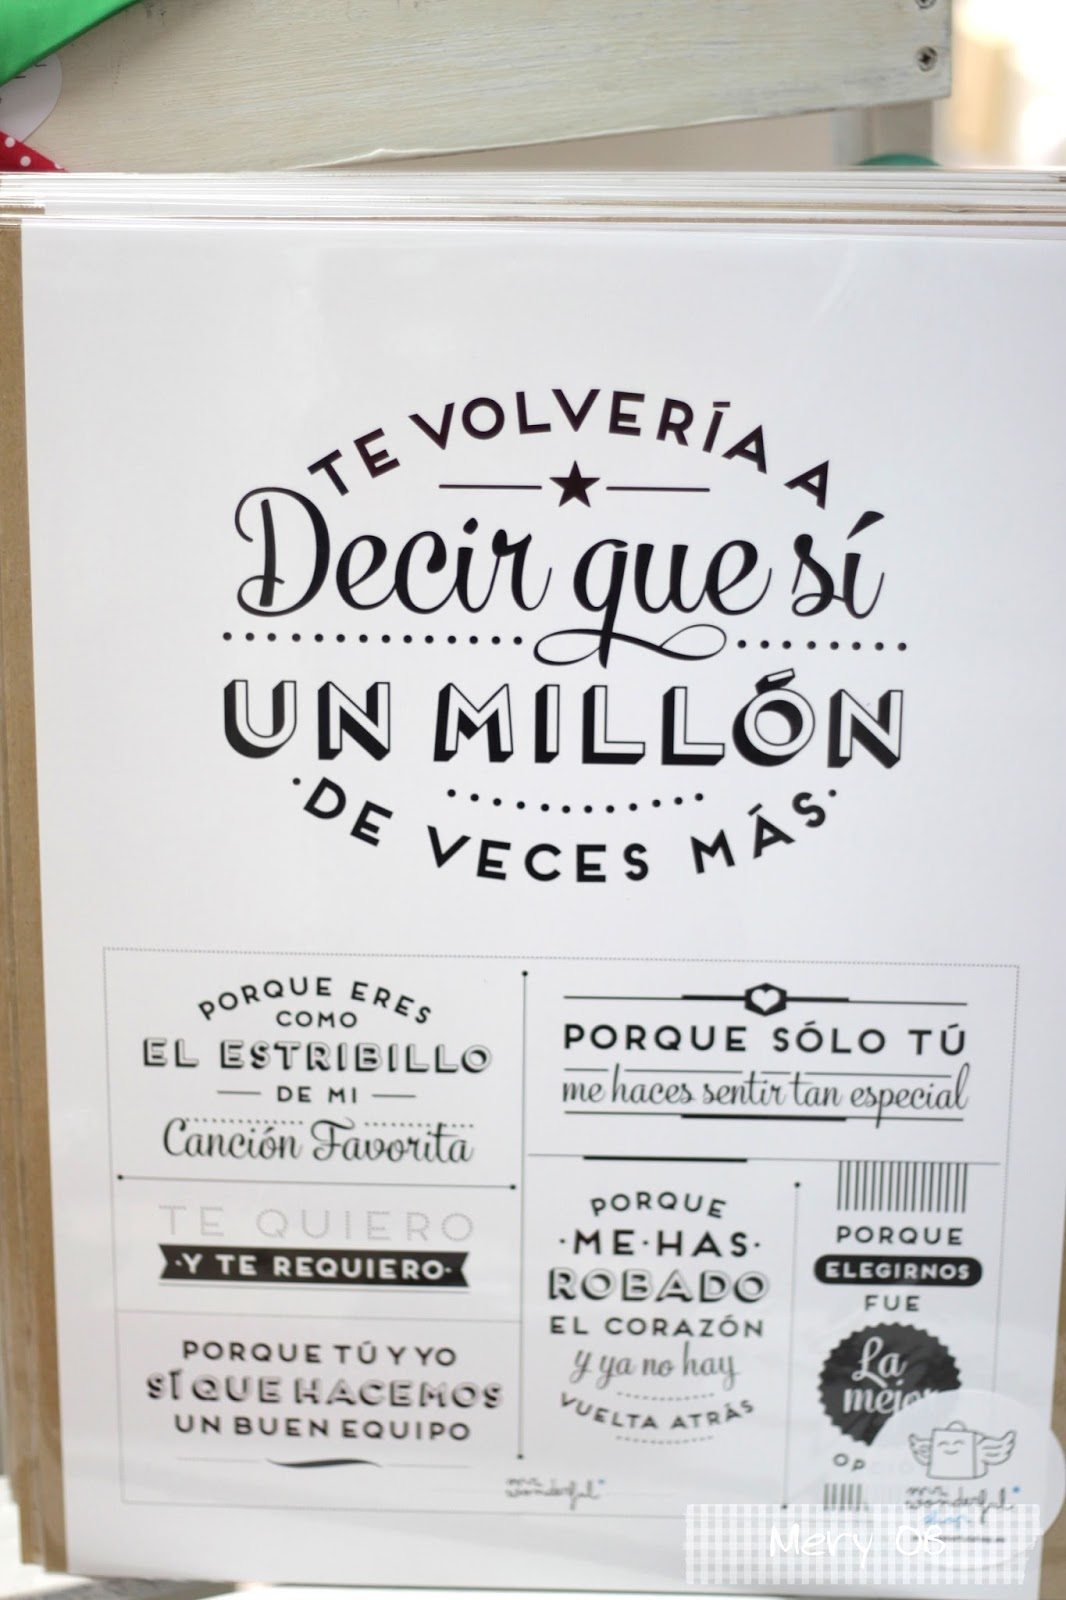 IMG 48171 066×1 600 píxeles Laminas mr wonderful